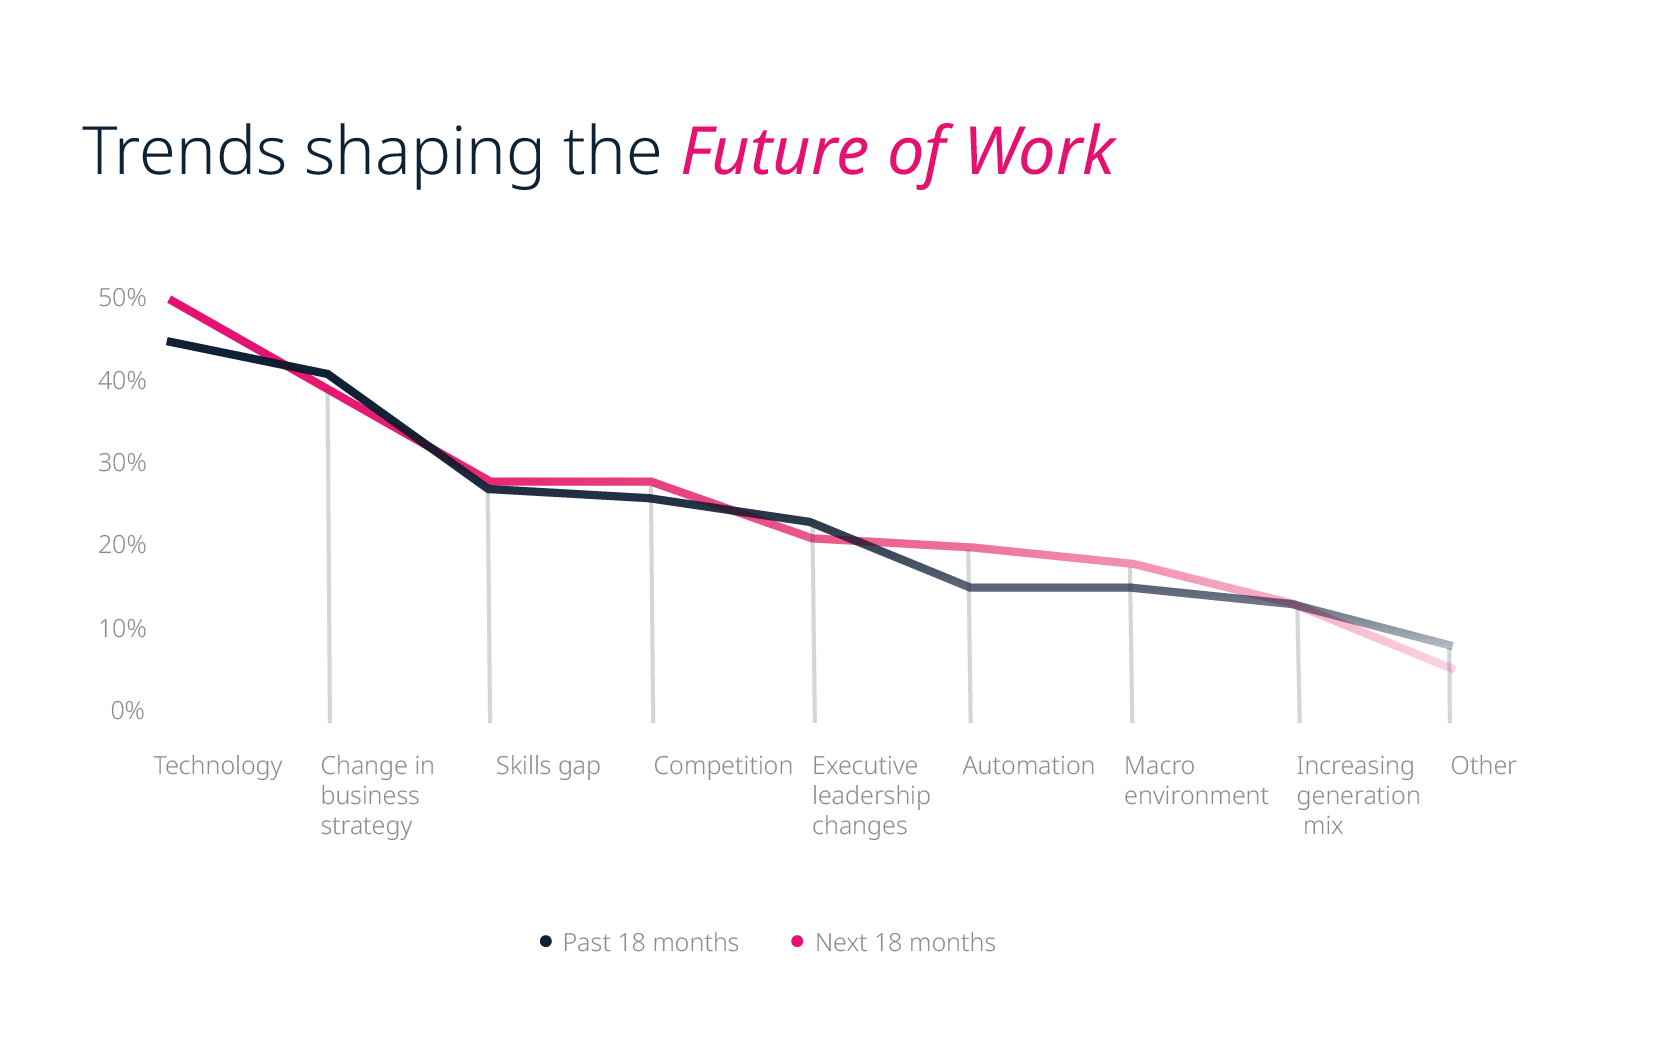 Trends shaping the future of work